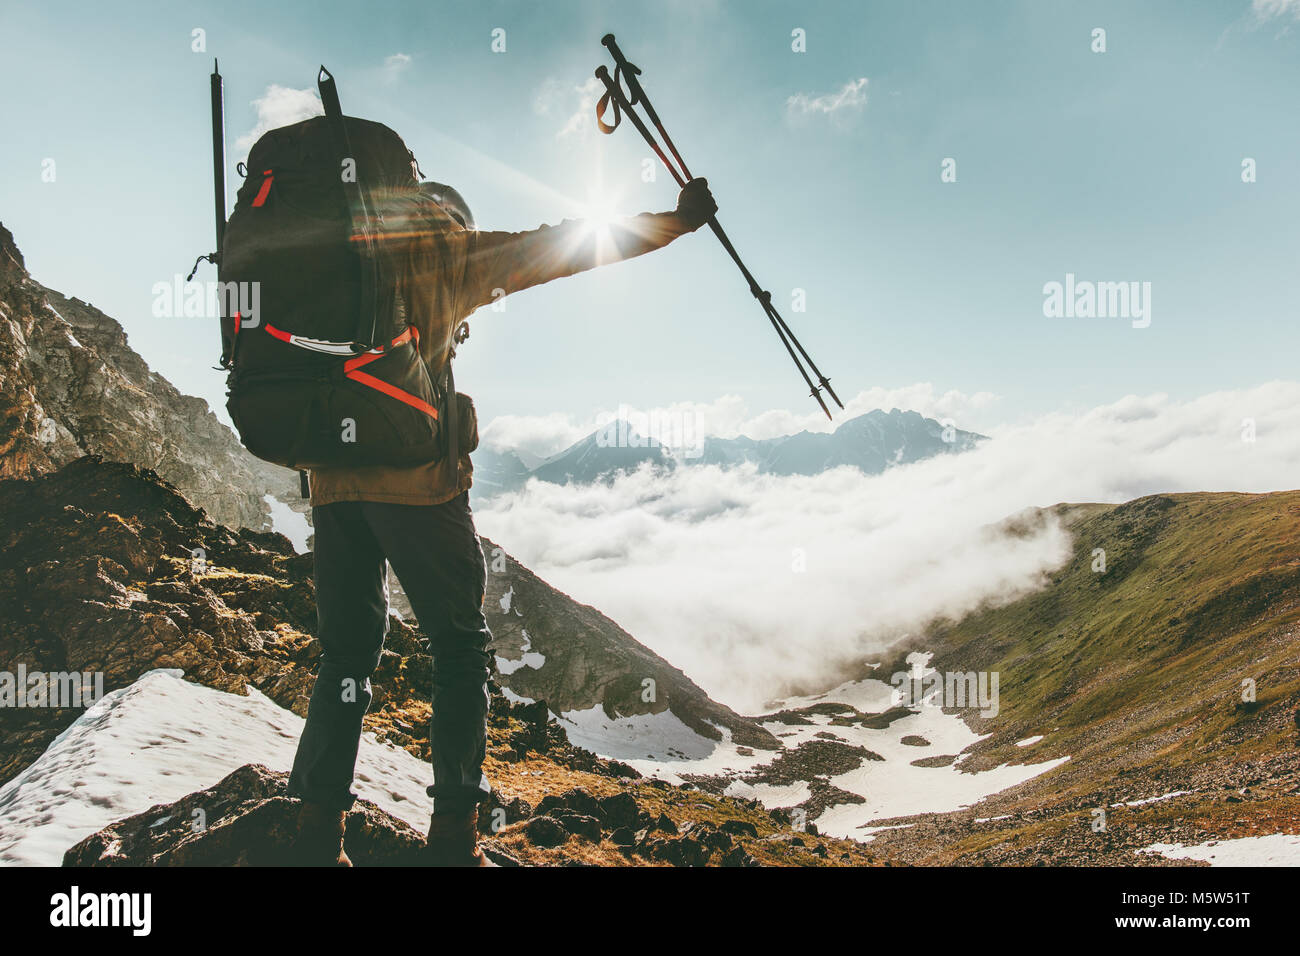 Backpacker Man on mountain summit Travel success lifestyle survival concept adventure outdoor active vacations sunny - Stock Image